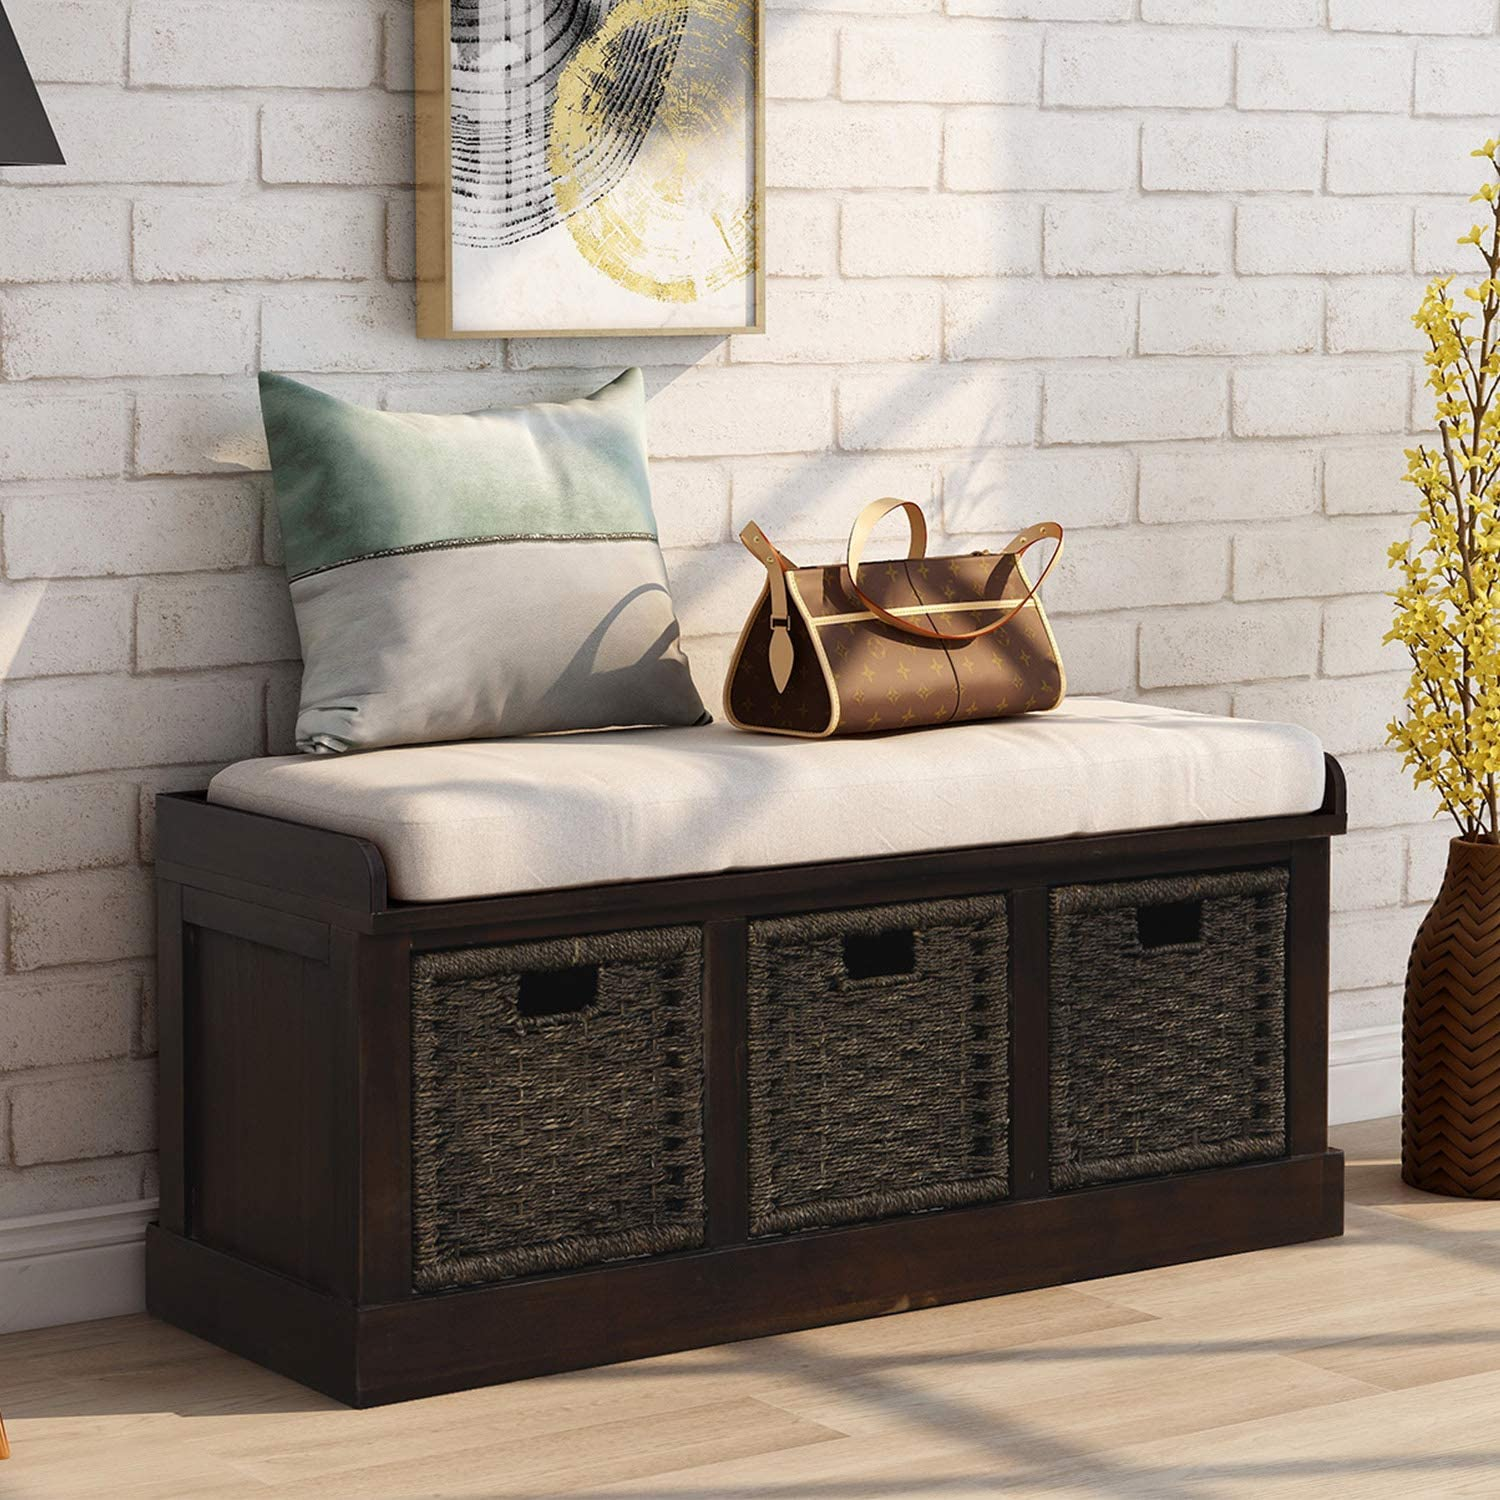 Entryway Storage Bench Rustic, Storage Seats For Living Room